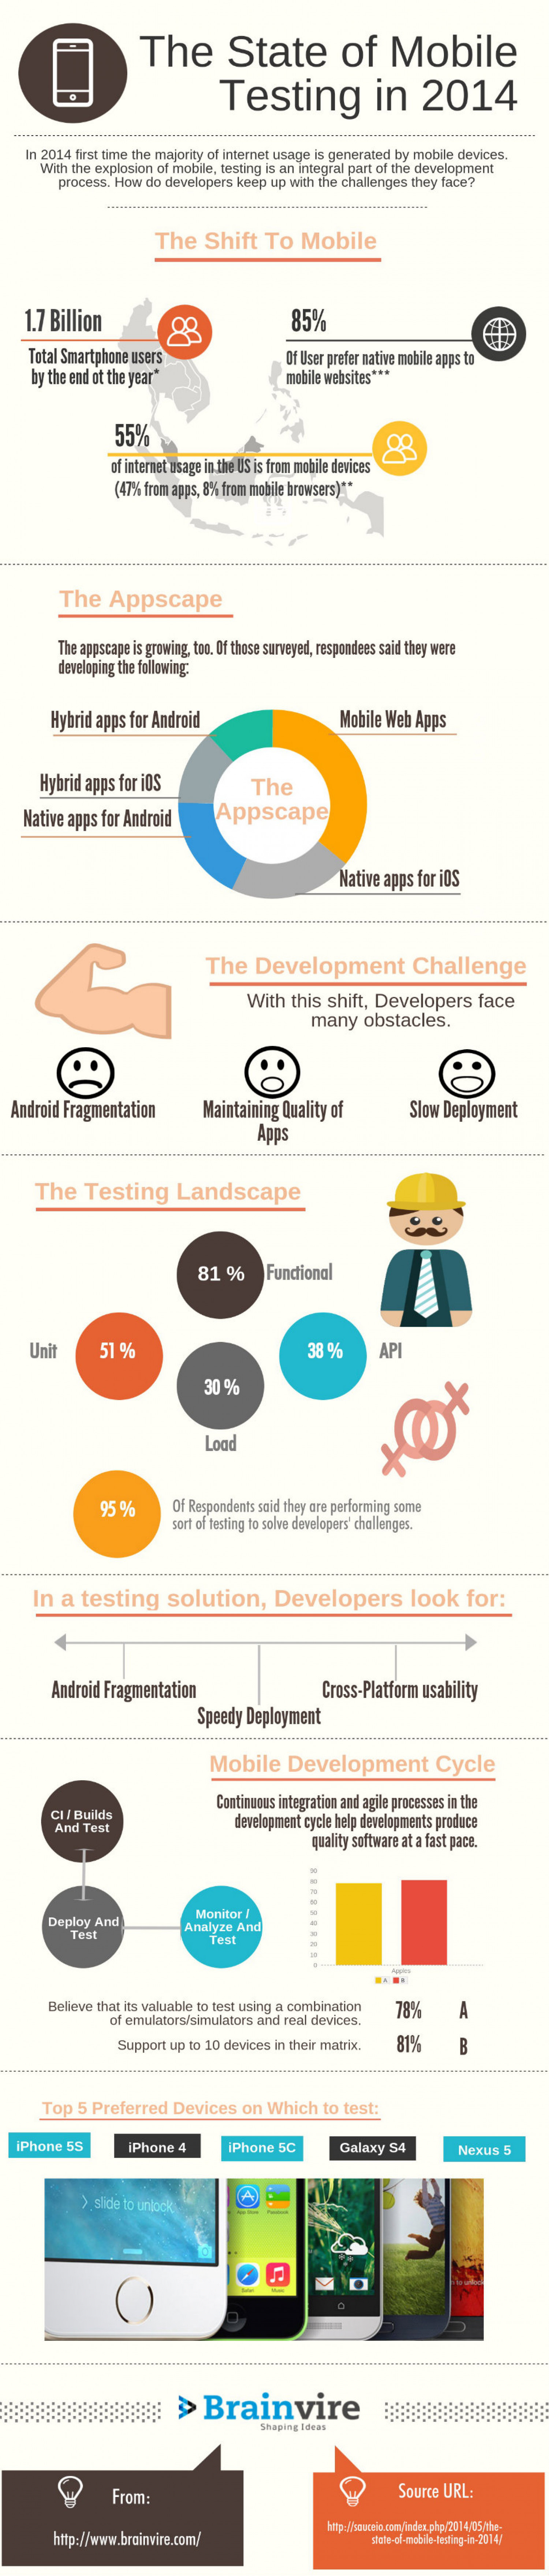 Things to be keep in mind for Mobile Testing in 2014 Infographic